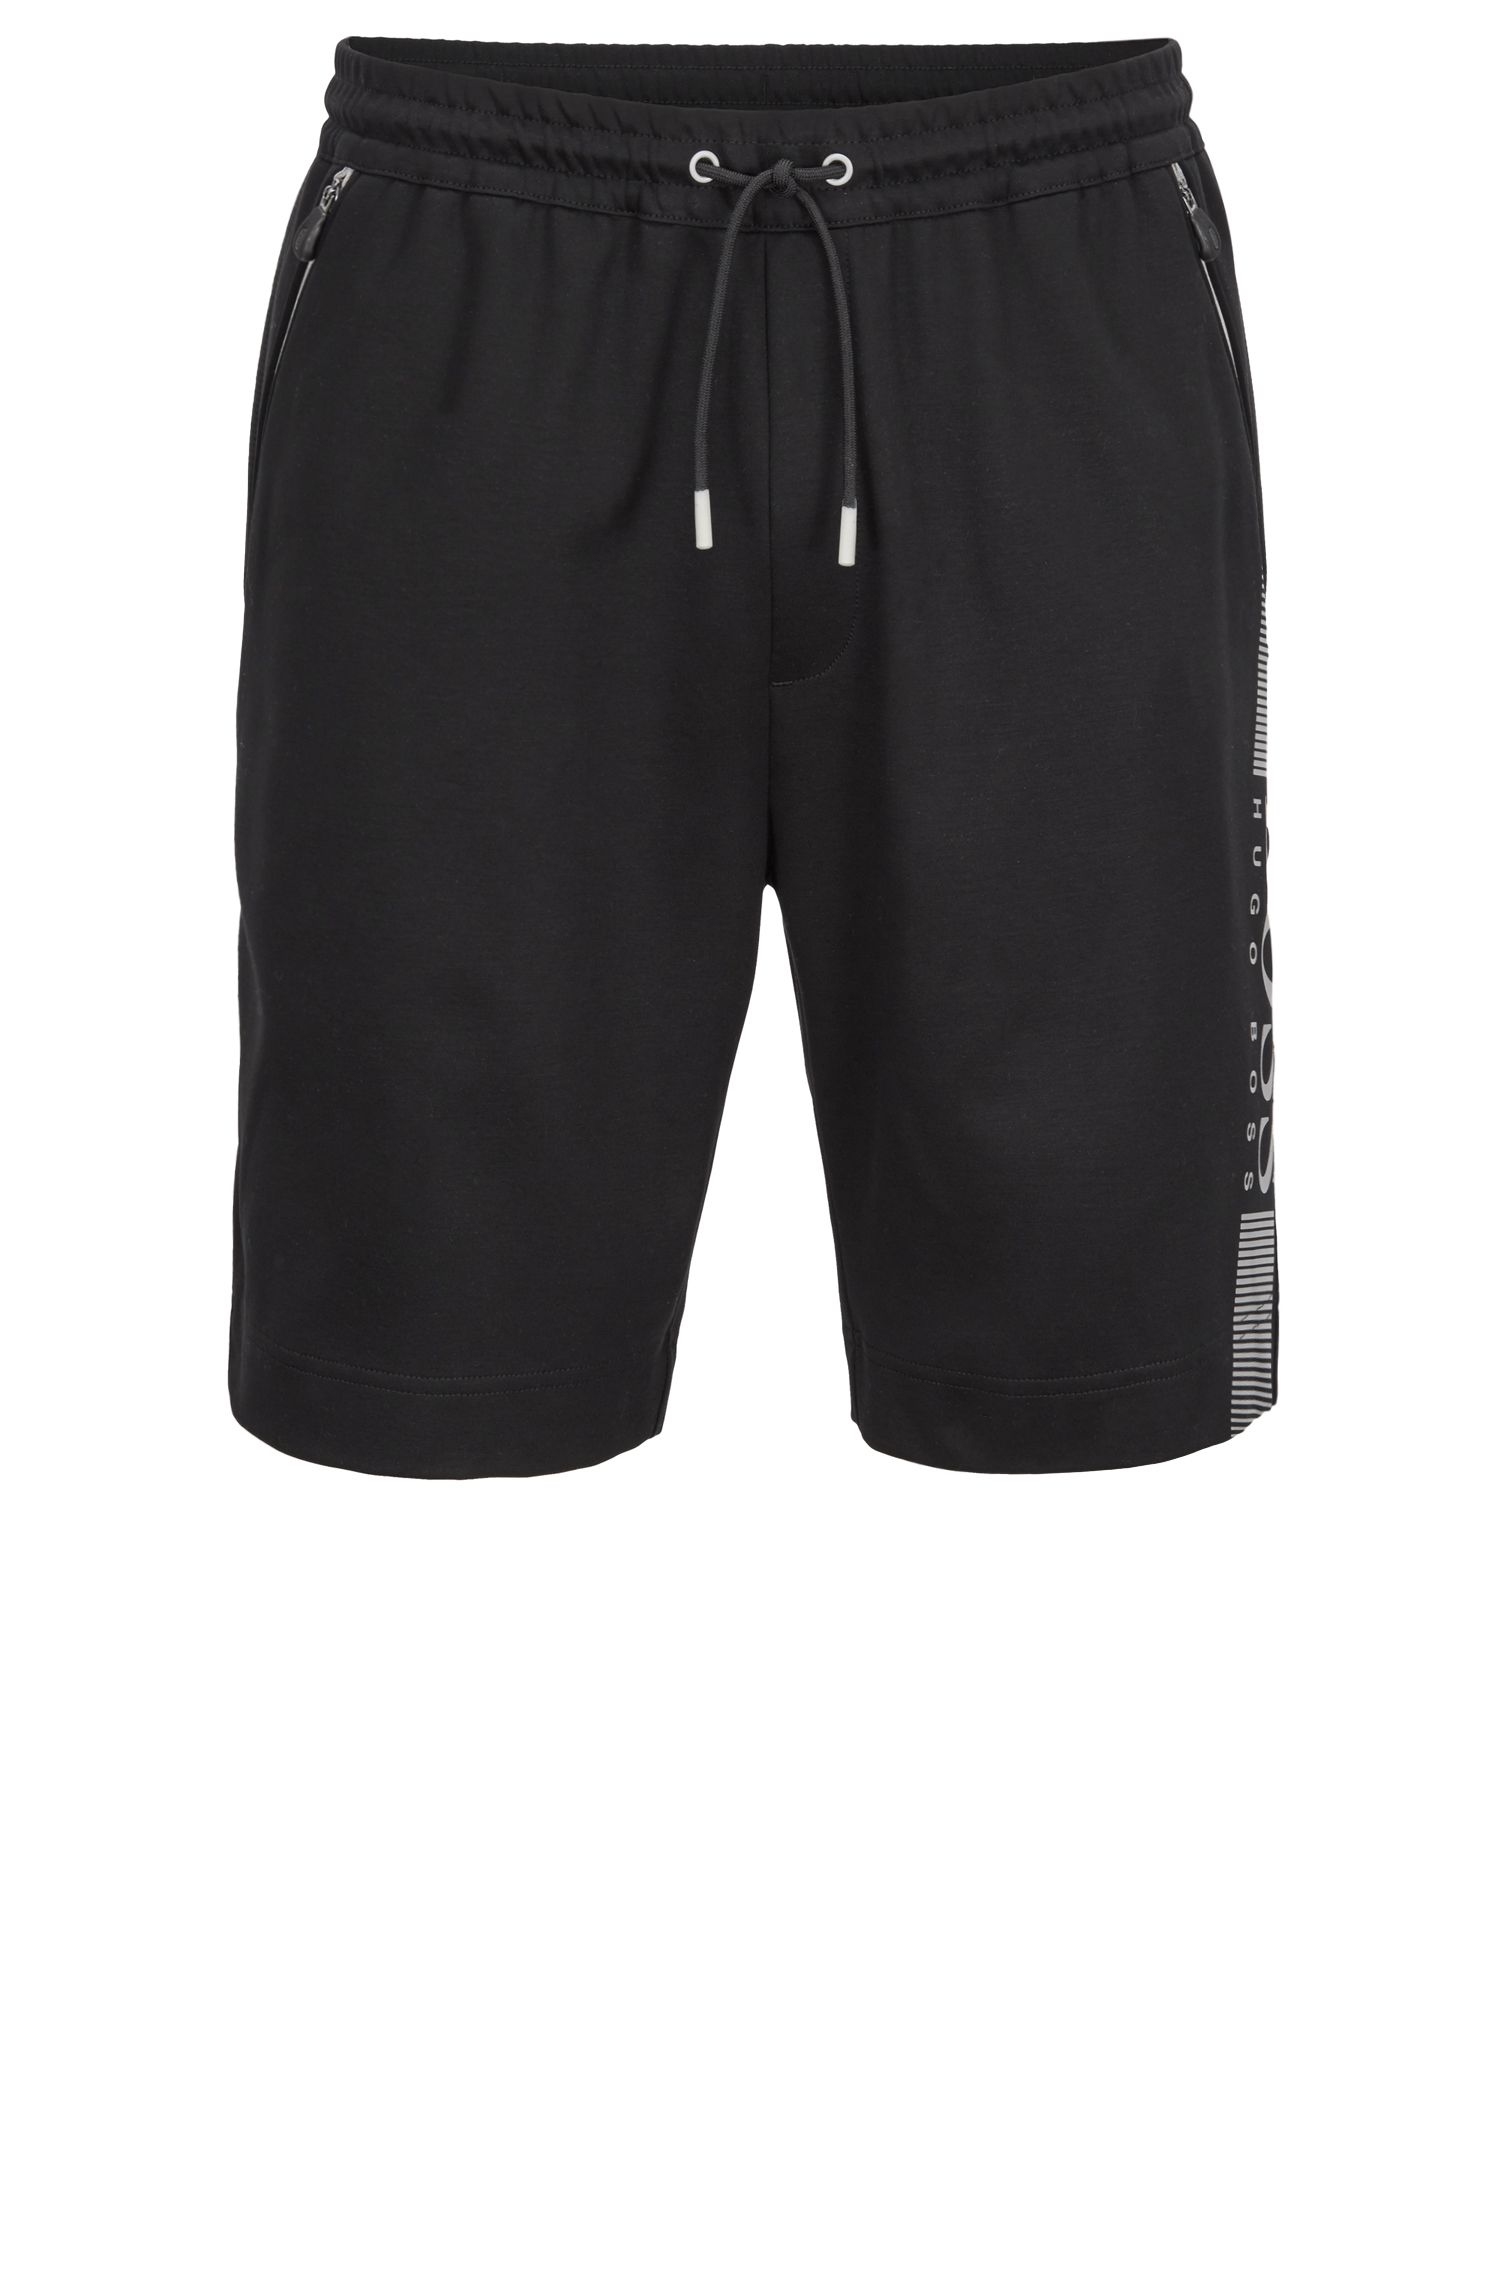 Slim-fit shorts in a moisture-wicking cotton blend